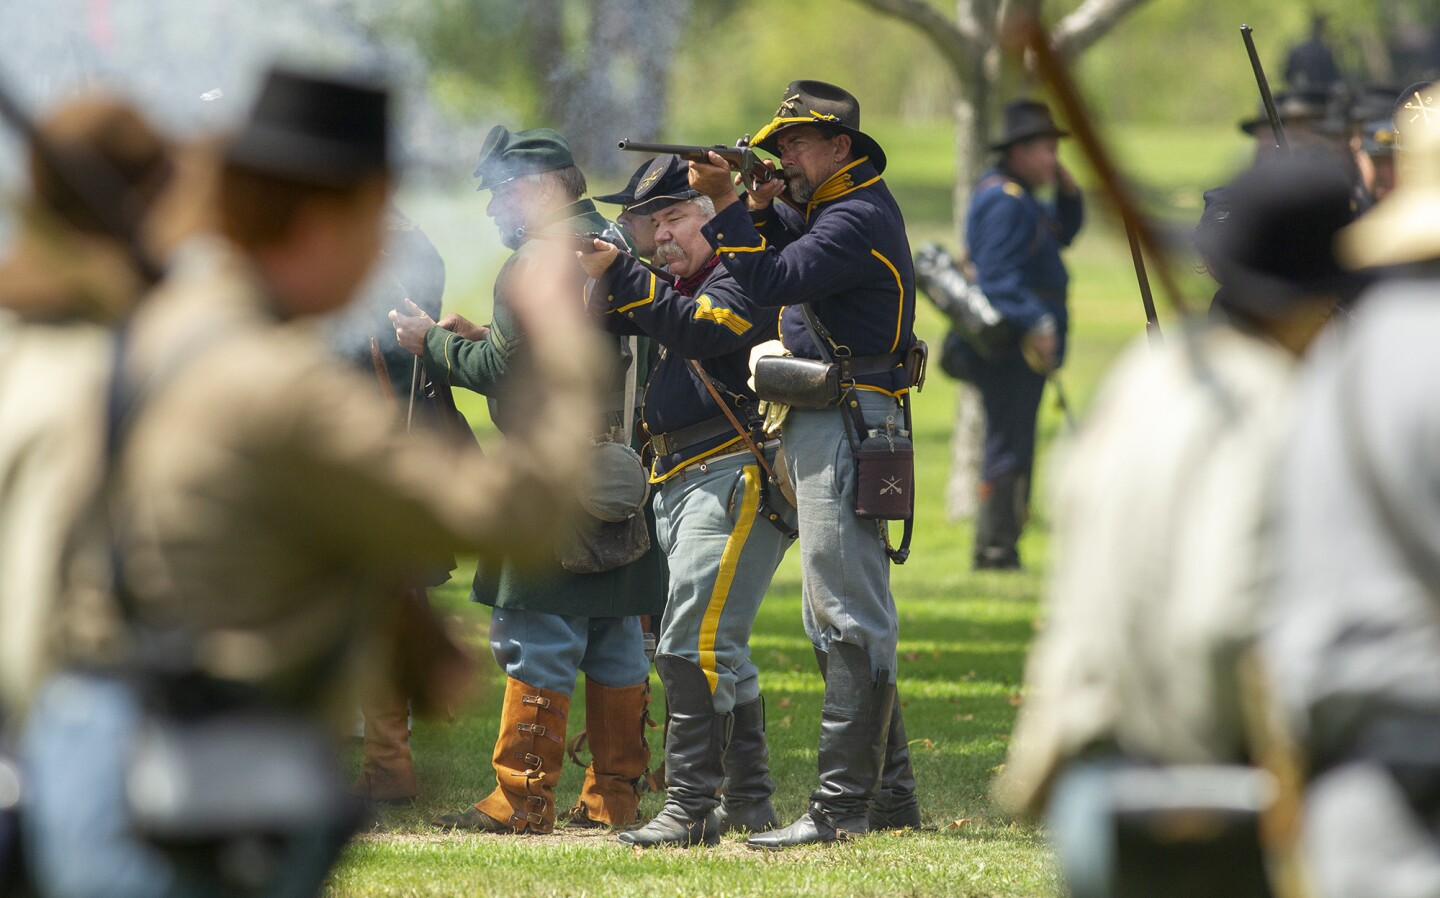 Union army soldiers fire at Confederate army soldiers during a battle at the 24th annual Civil War Days Living History Event in Huntington Beach Central Park on Saturday, September 1.